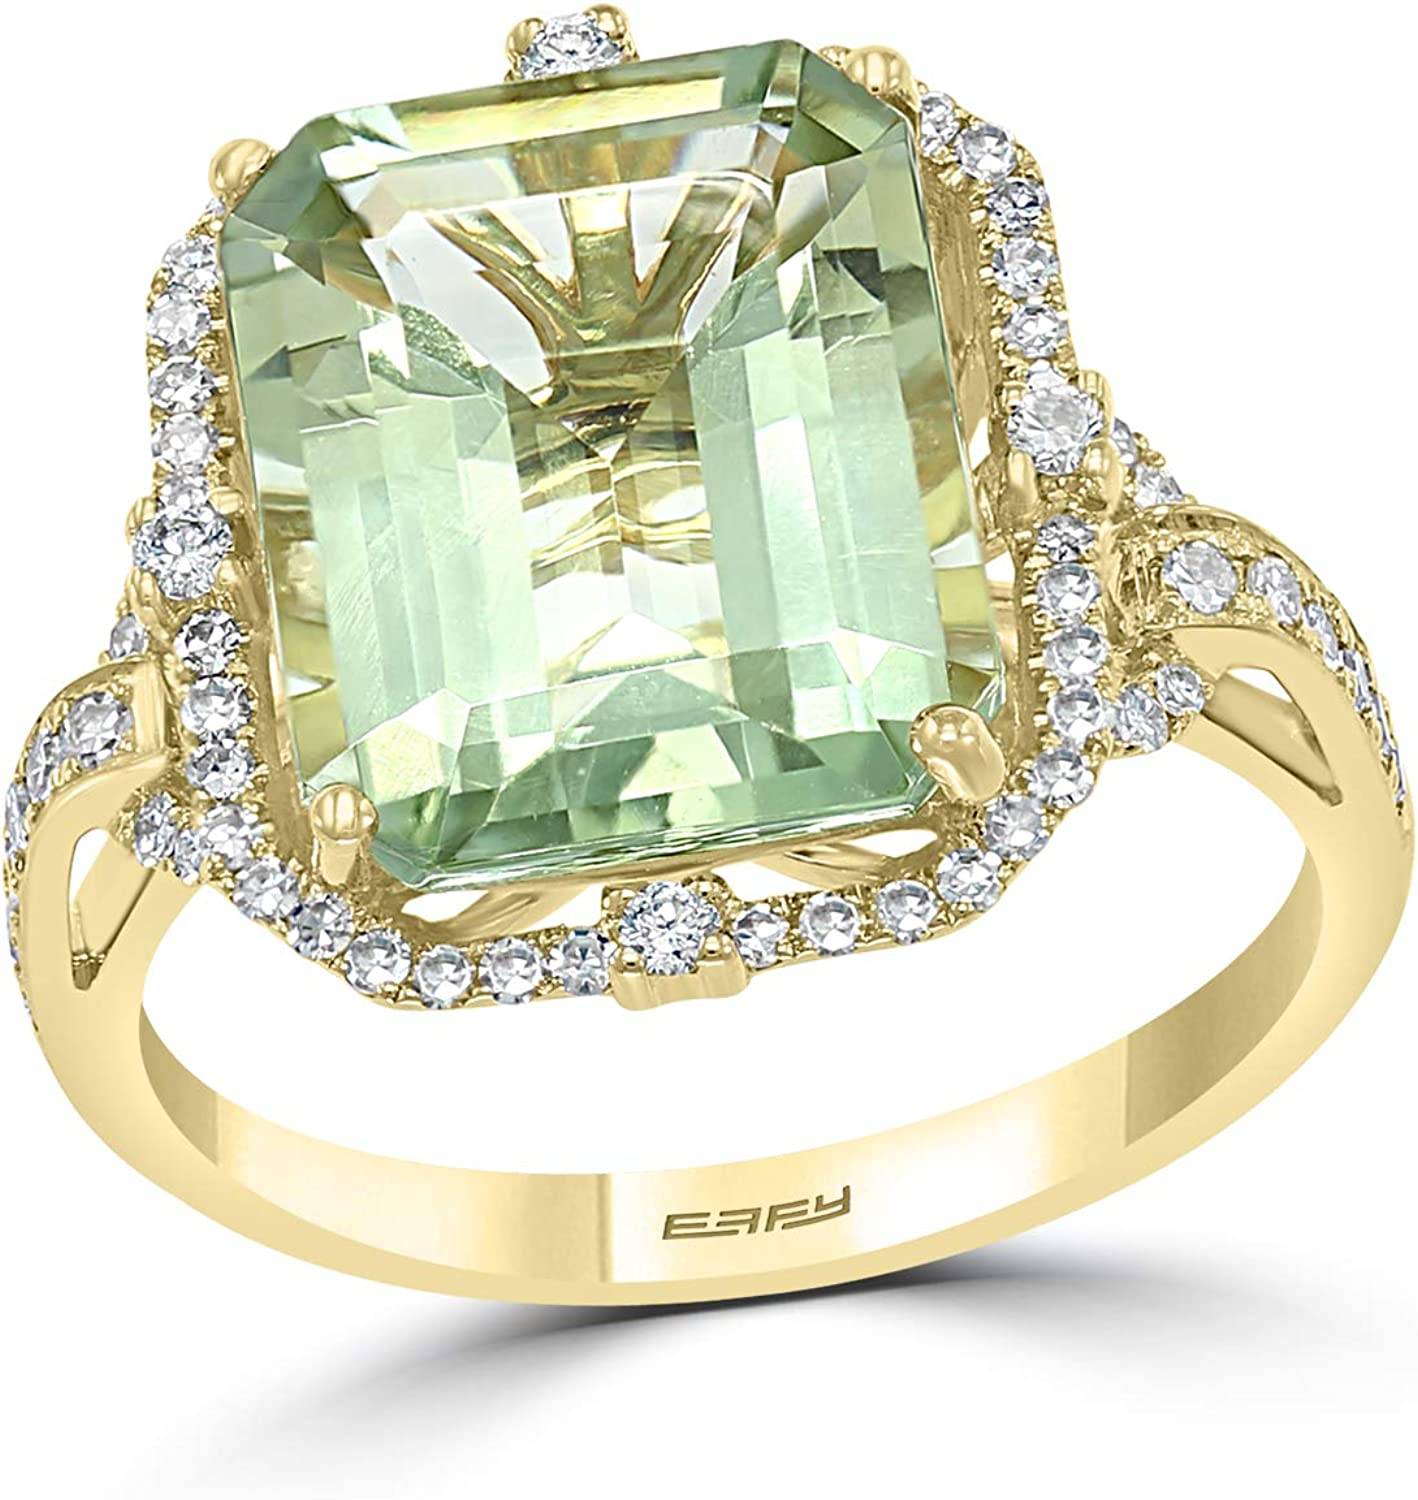 Effy Jewelry Green Amethyst & Diamond Cocktail Ring in 14K Yellow Gold, 5.5 TCW HRY0Q364IL